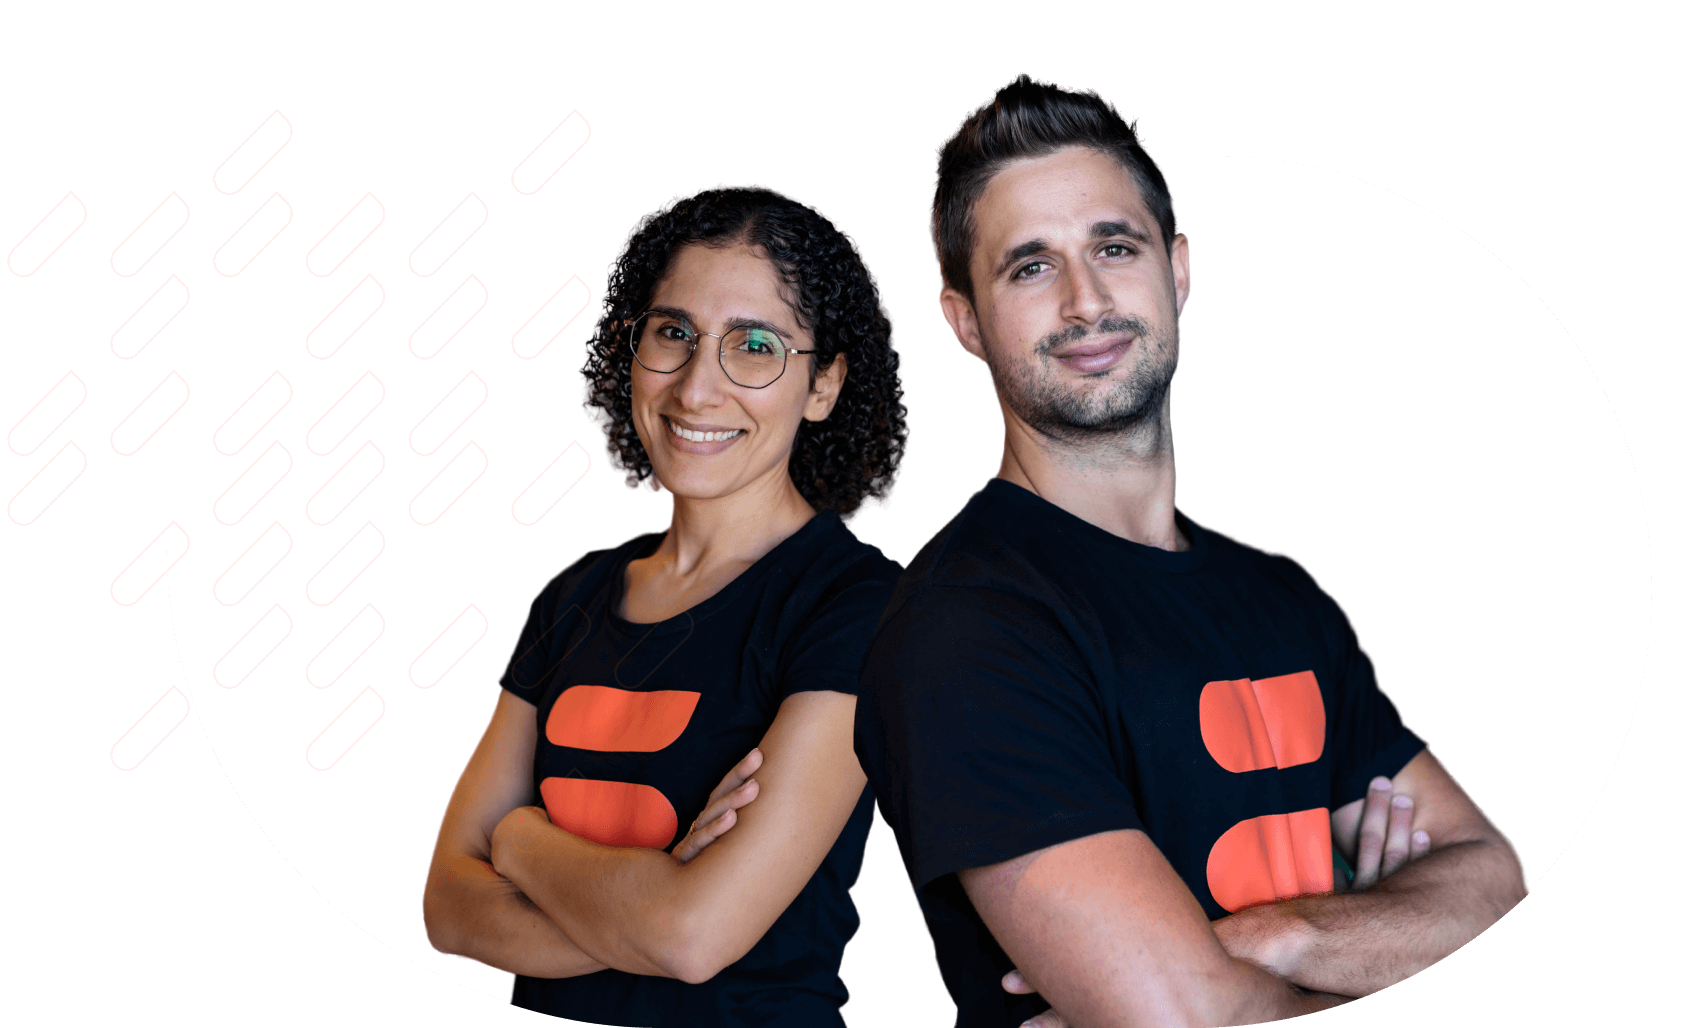 Portrait of Two persons in Mayple T-Shirt